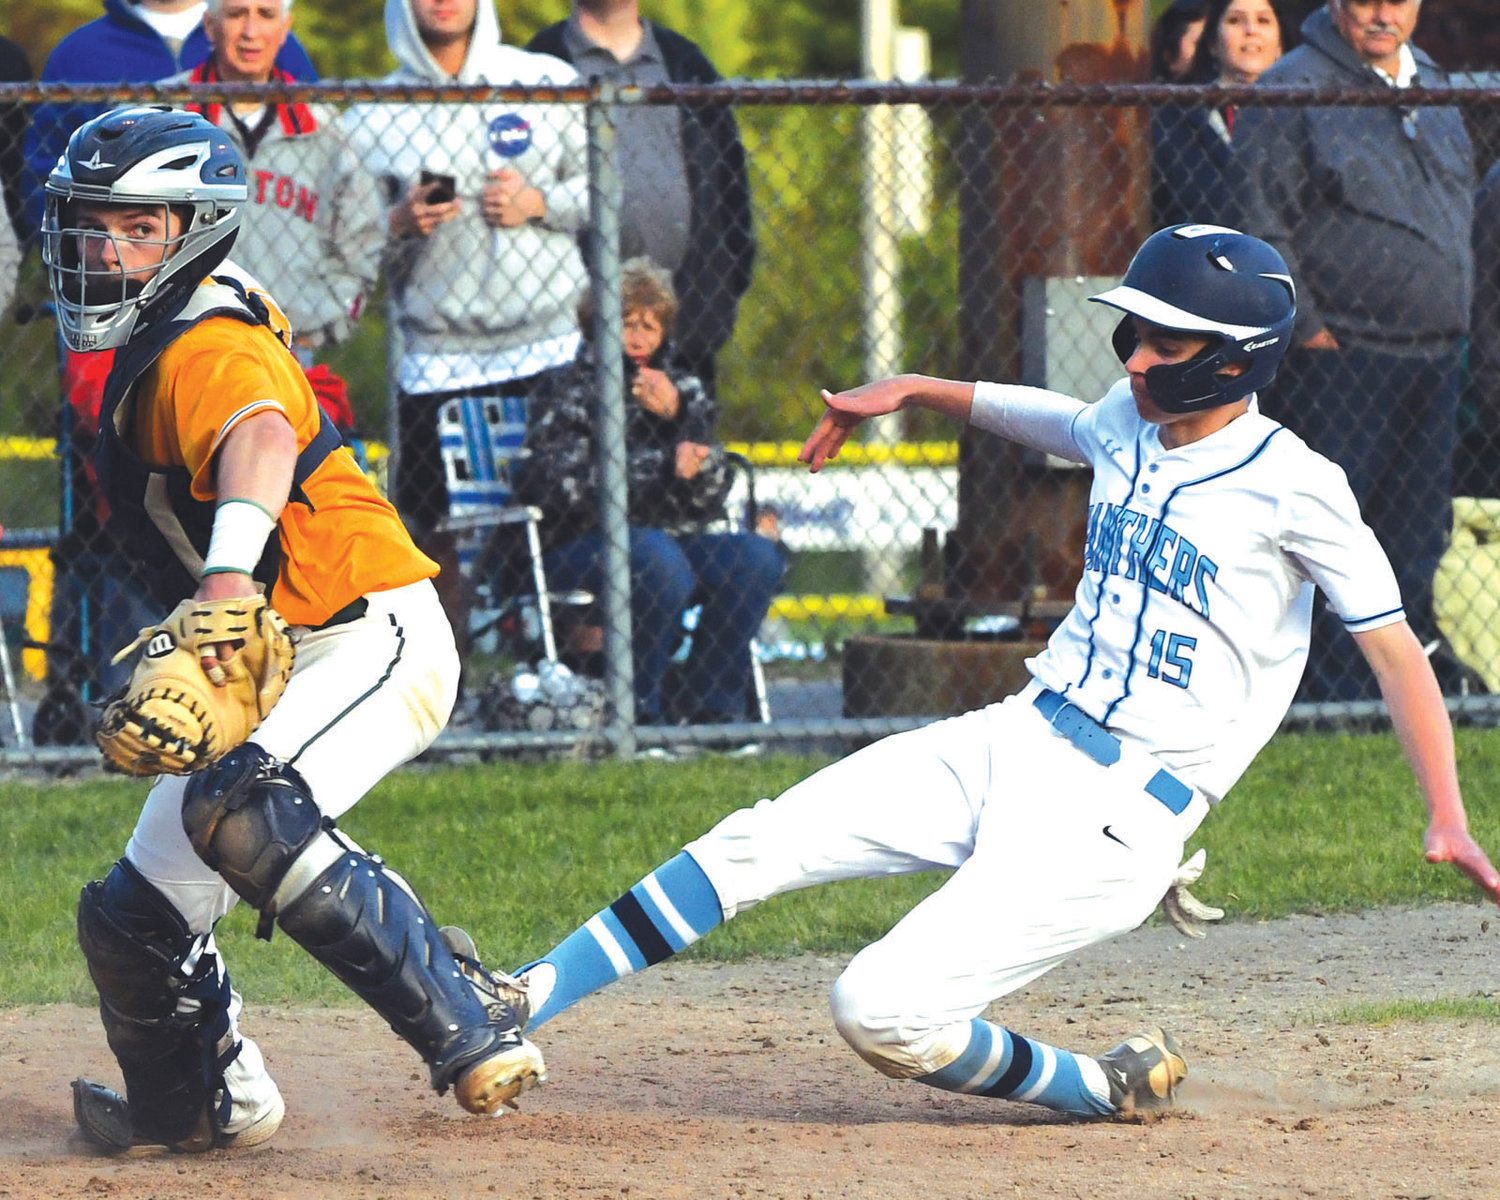 HEADED FOR HOME: Johnston's David Iannuccilli slides into home.